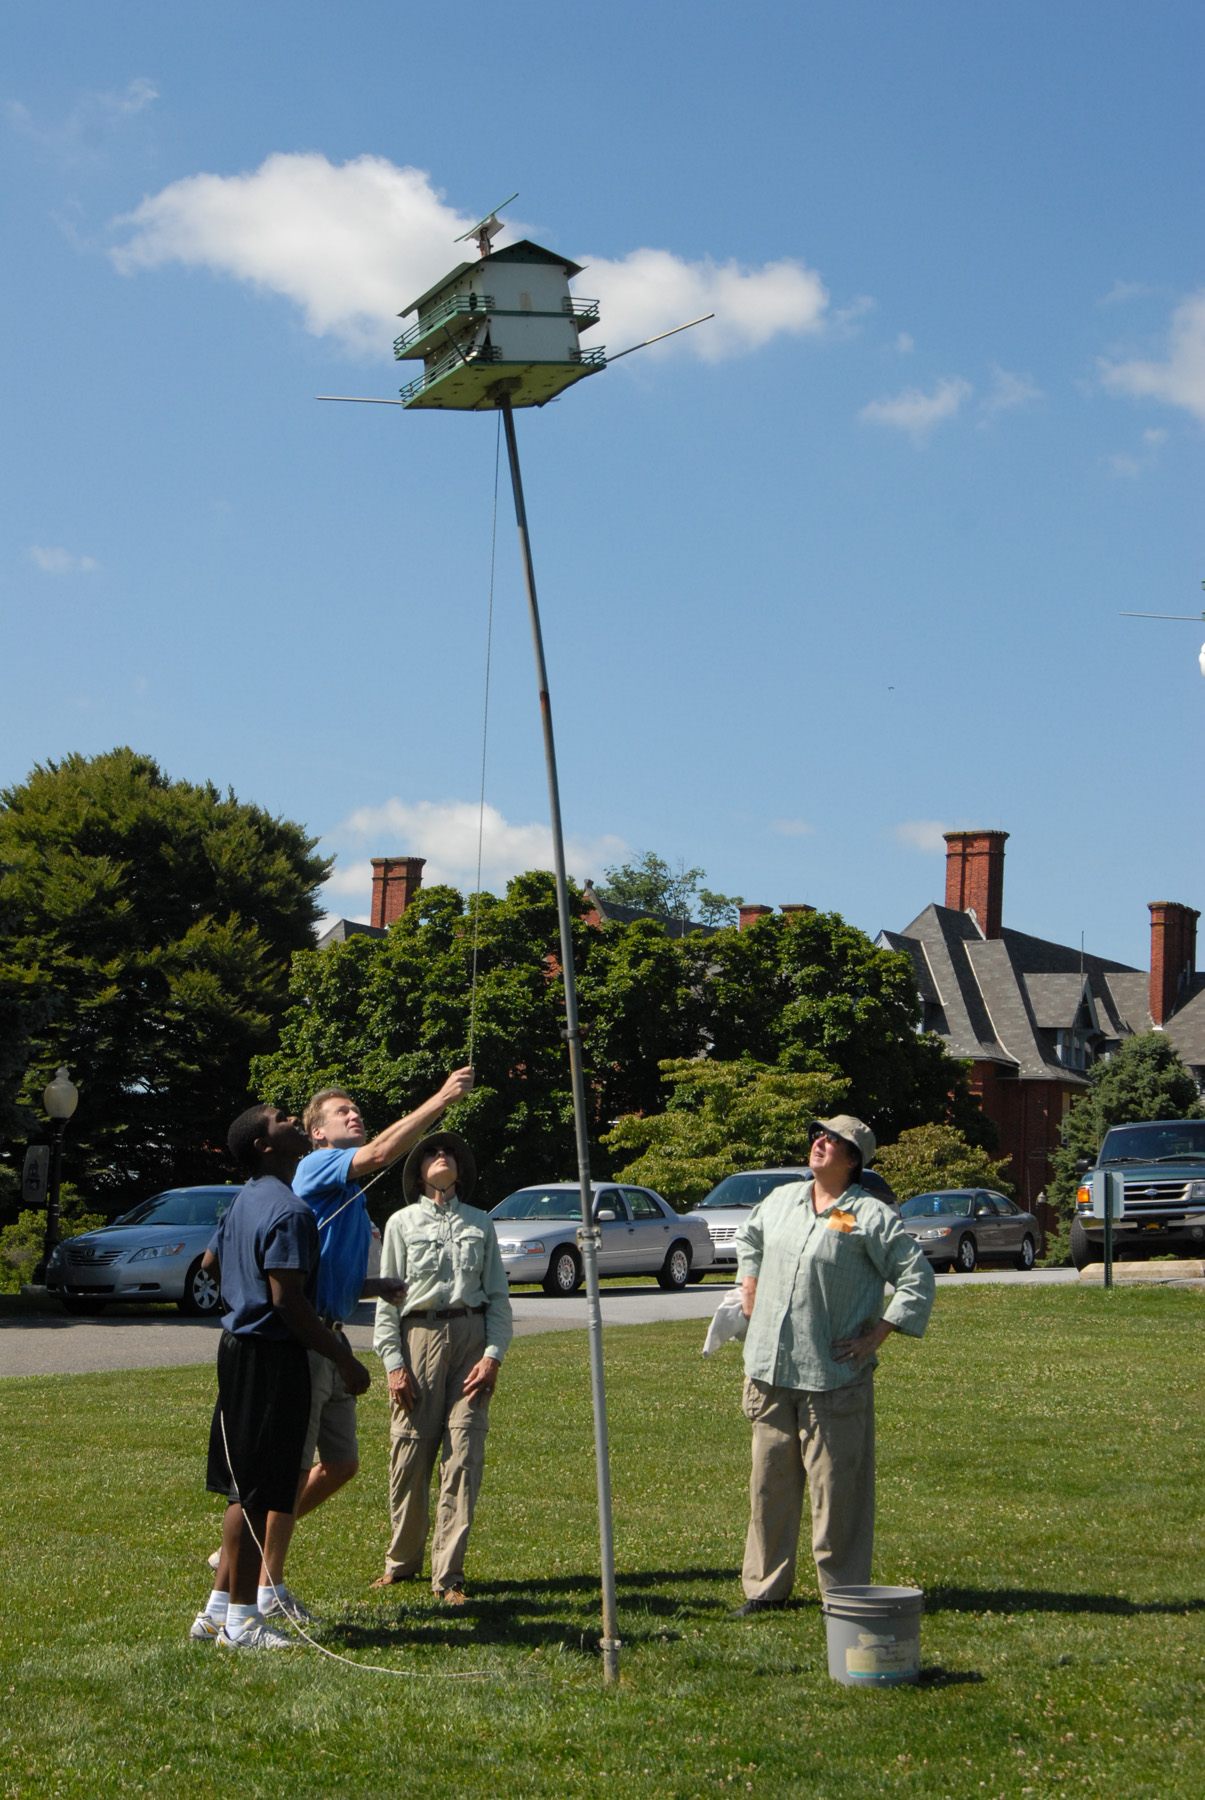 Lowering a Purple Martin House. Yikes!